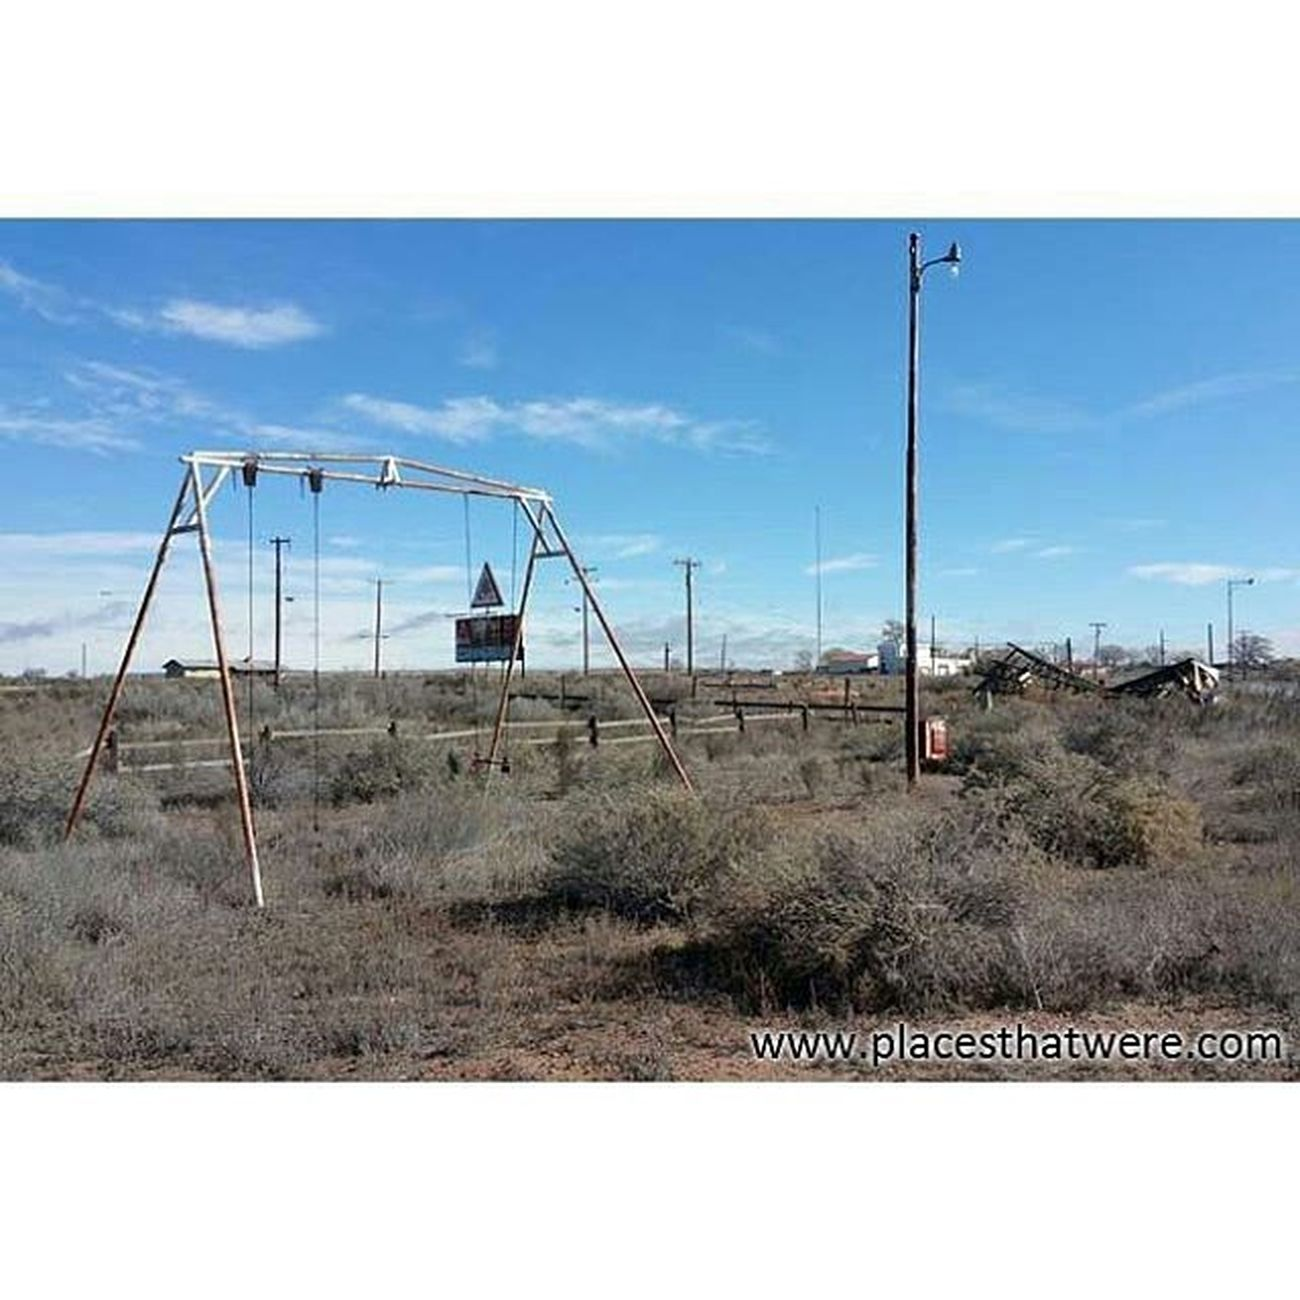 Desolate swingset Abandoned Abandonedbuilding Abandonedplaces Arizona Camping Decay Forgottenplaces Ghosttowns Hopi Mormons  Navajo Roadtrip Route66 Rt66 Ruins RuralExploration Rurex Urbanexploration Urbex